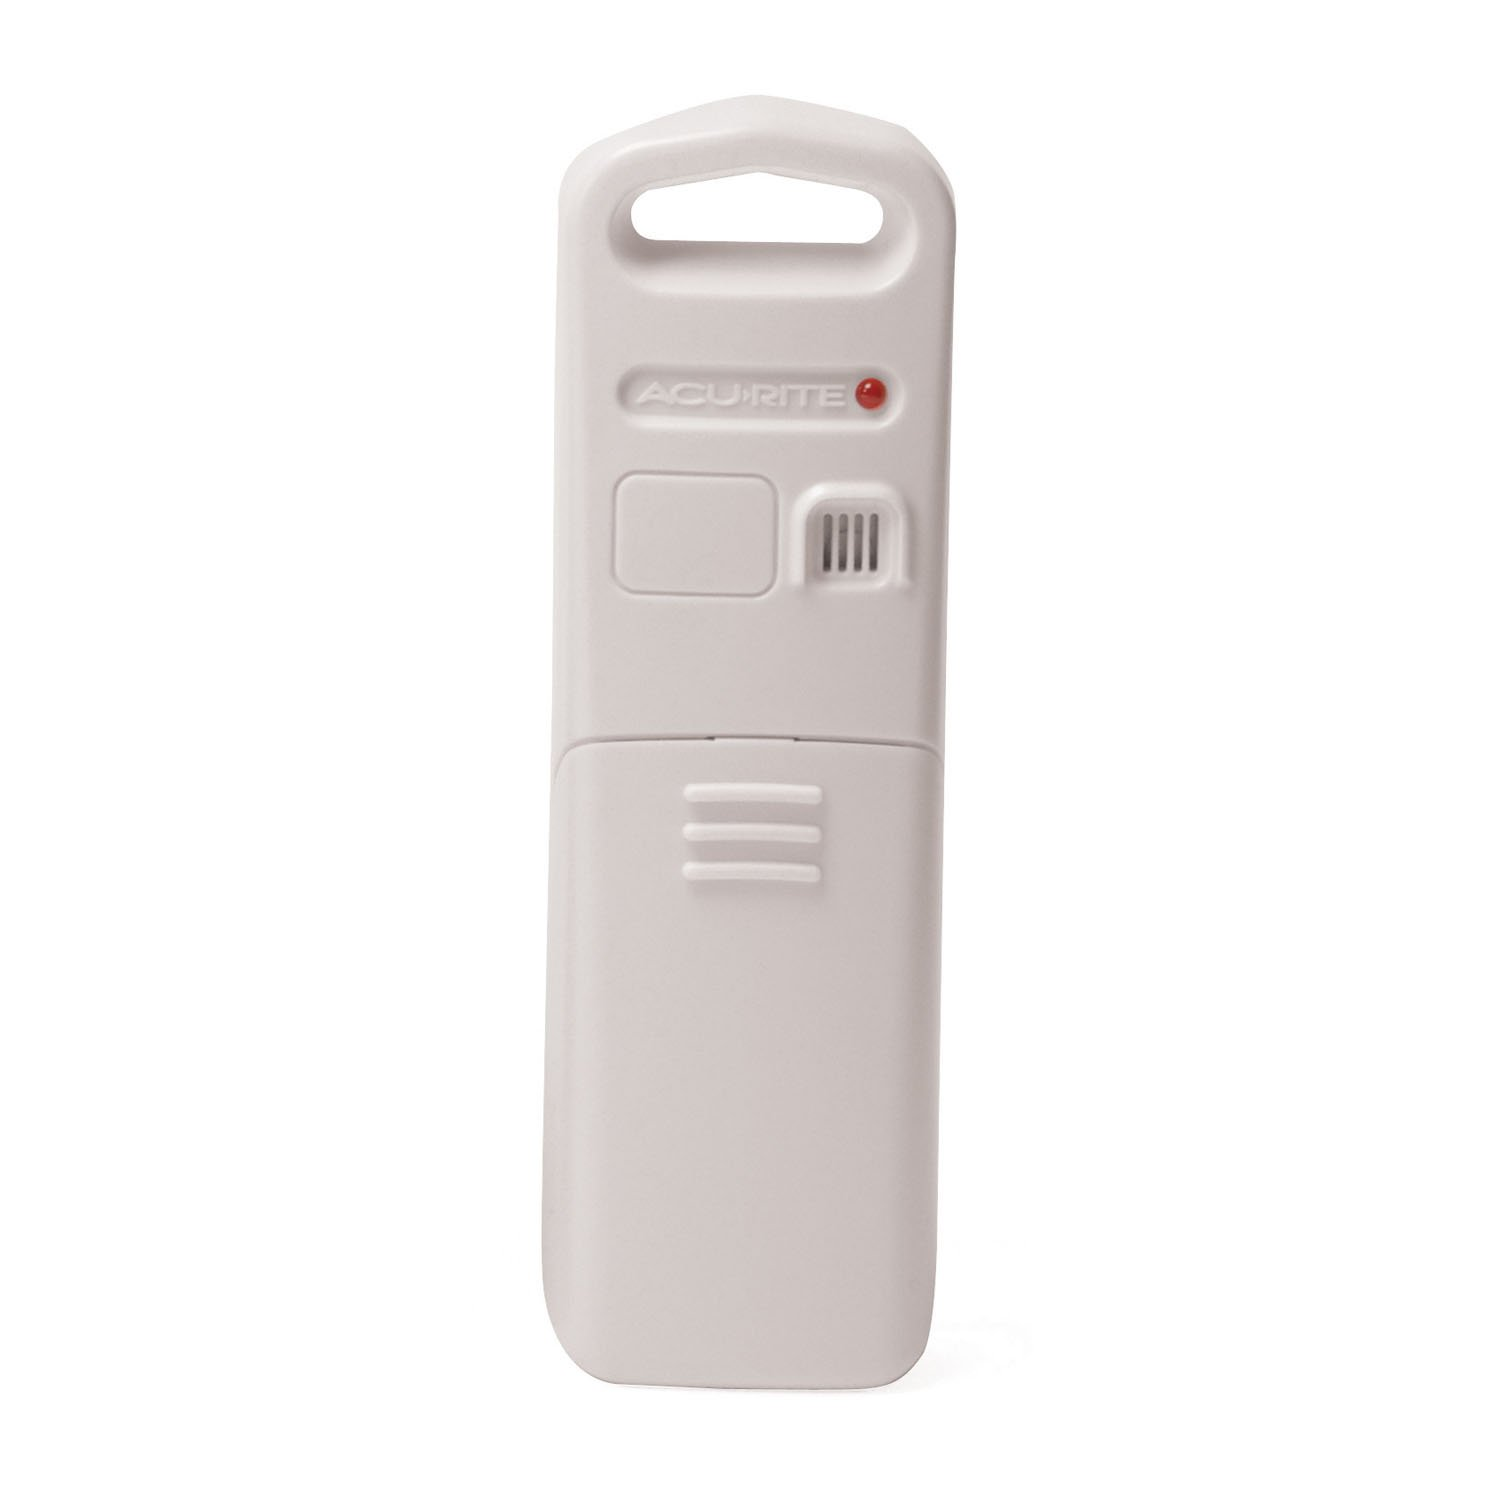 AcuRite 606TX Wireless Temperature Sensor